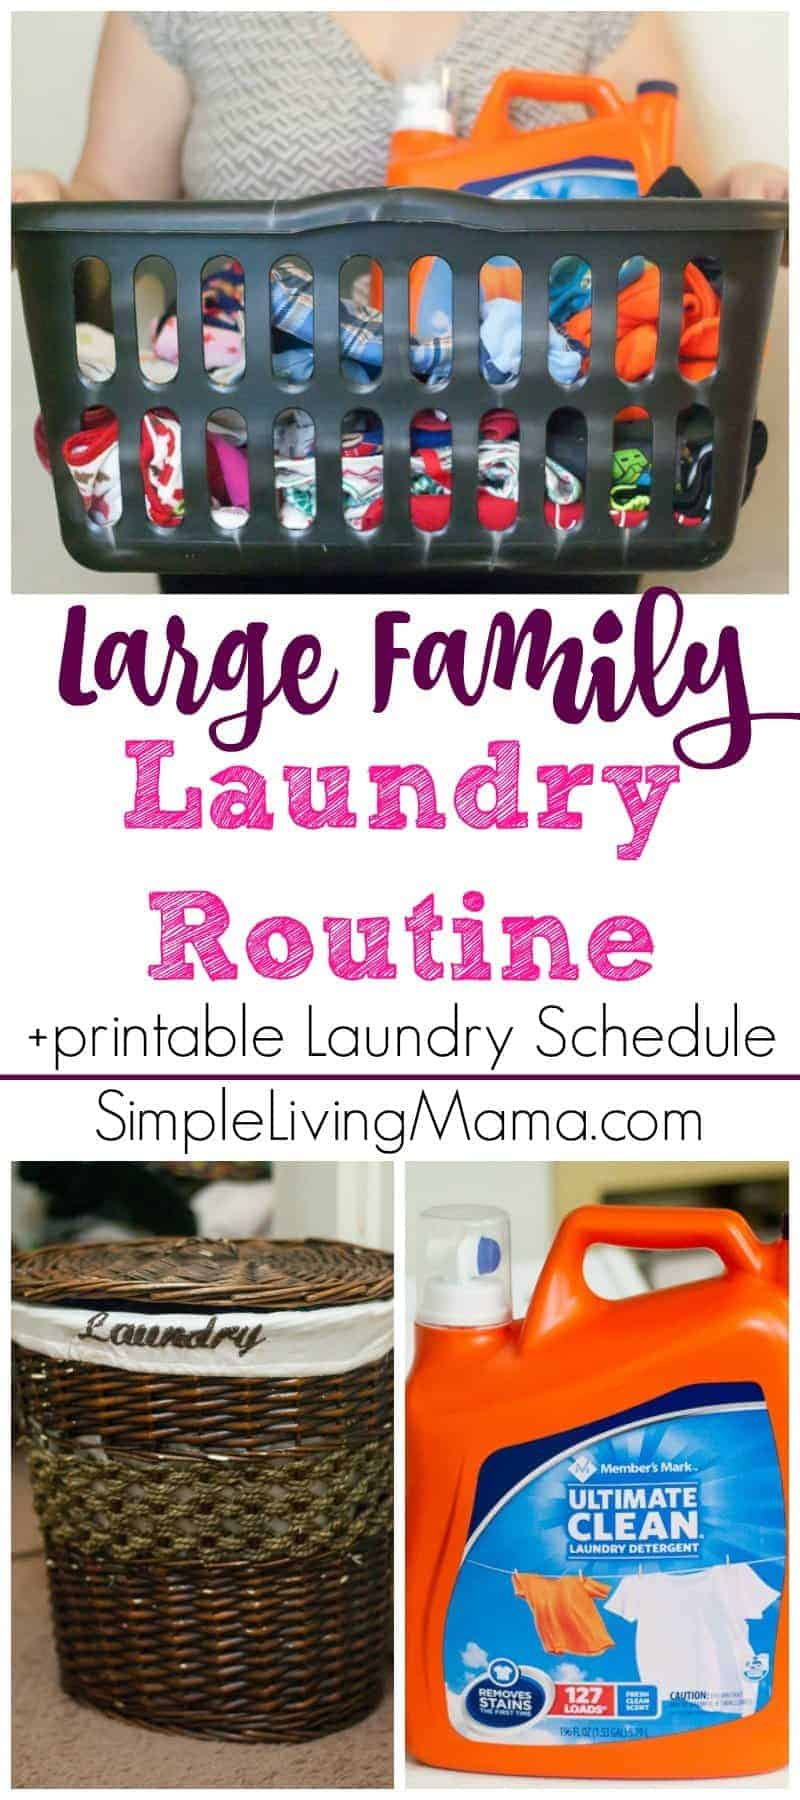 Large family laundry routine printable laundry schedule for Large family laundry